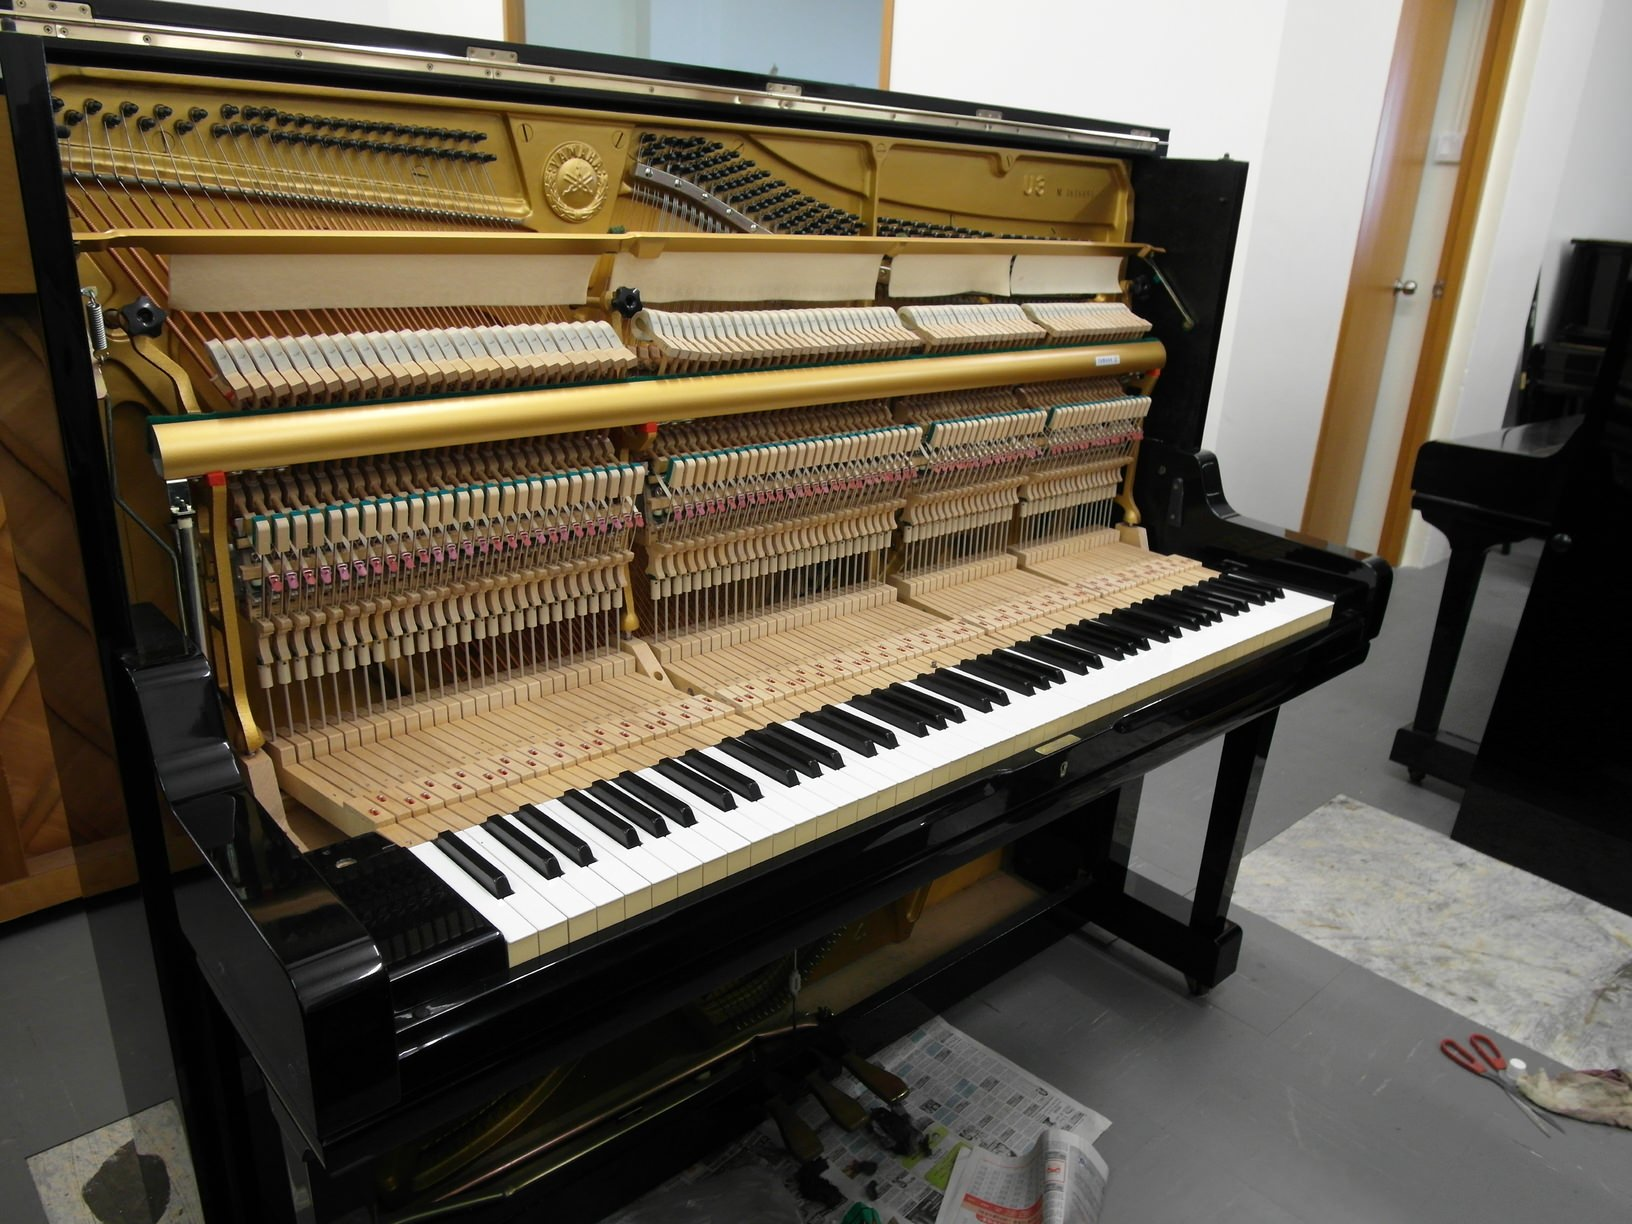 used yamaha piano U3 - excellent condition